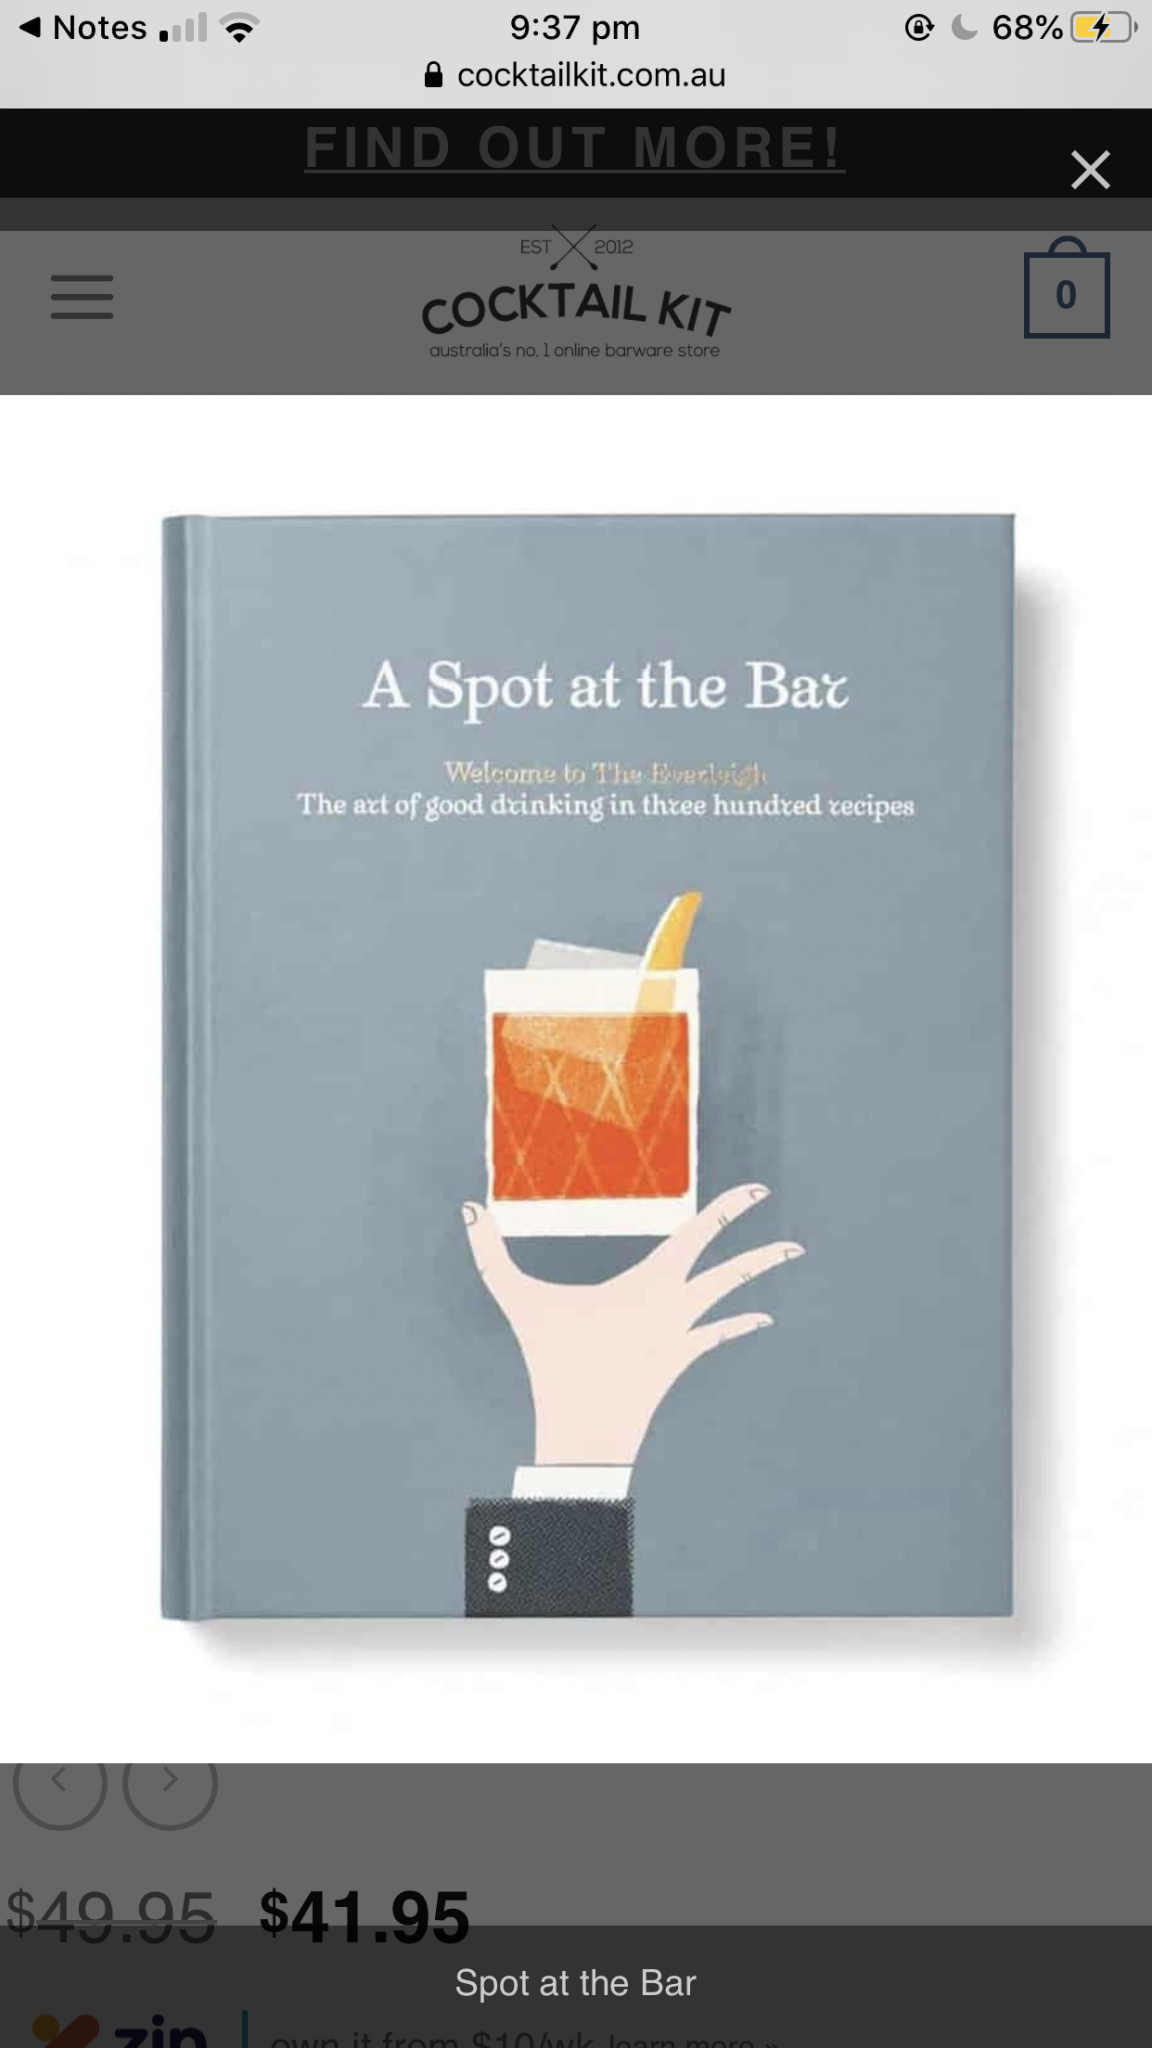 Cocktail recipe book - a spot at the bar